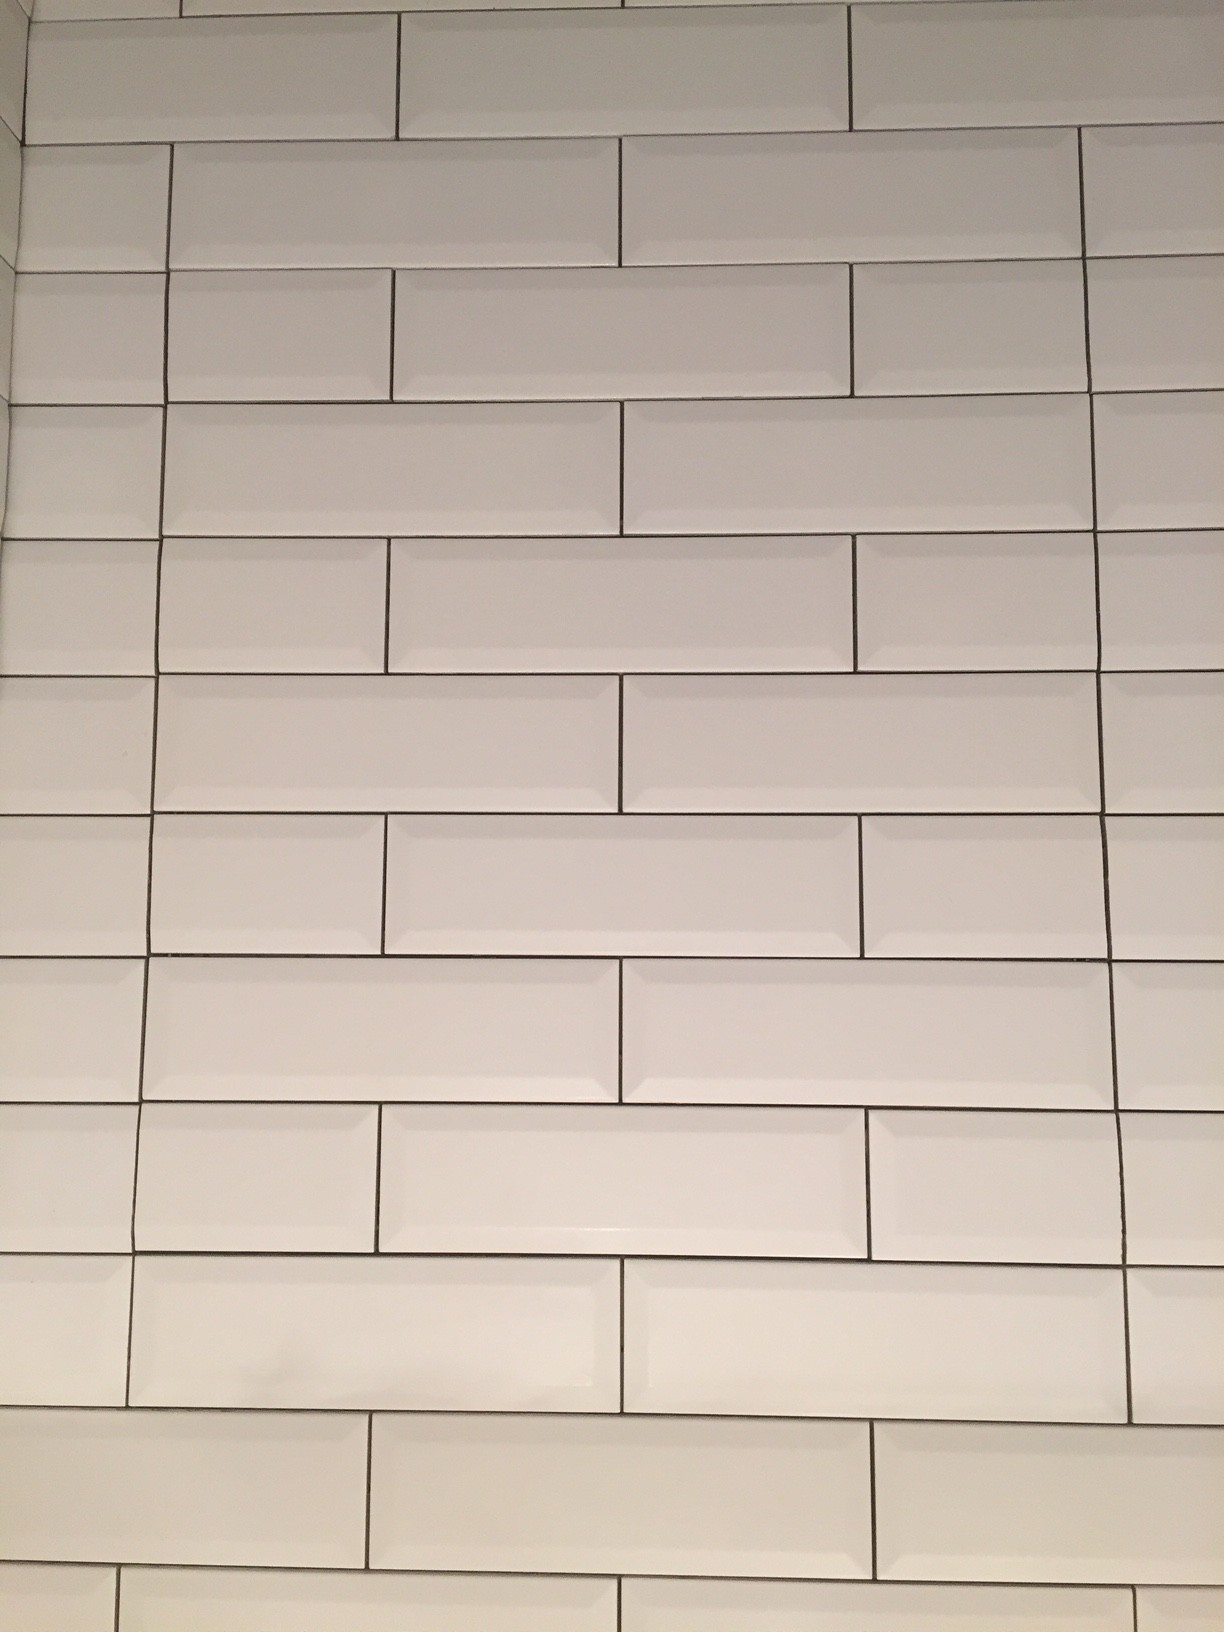 How To Make A Hidden Access Panel With Subway Tiles